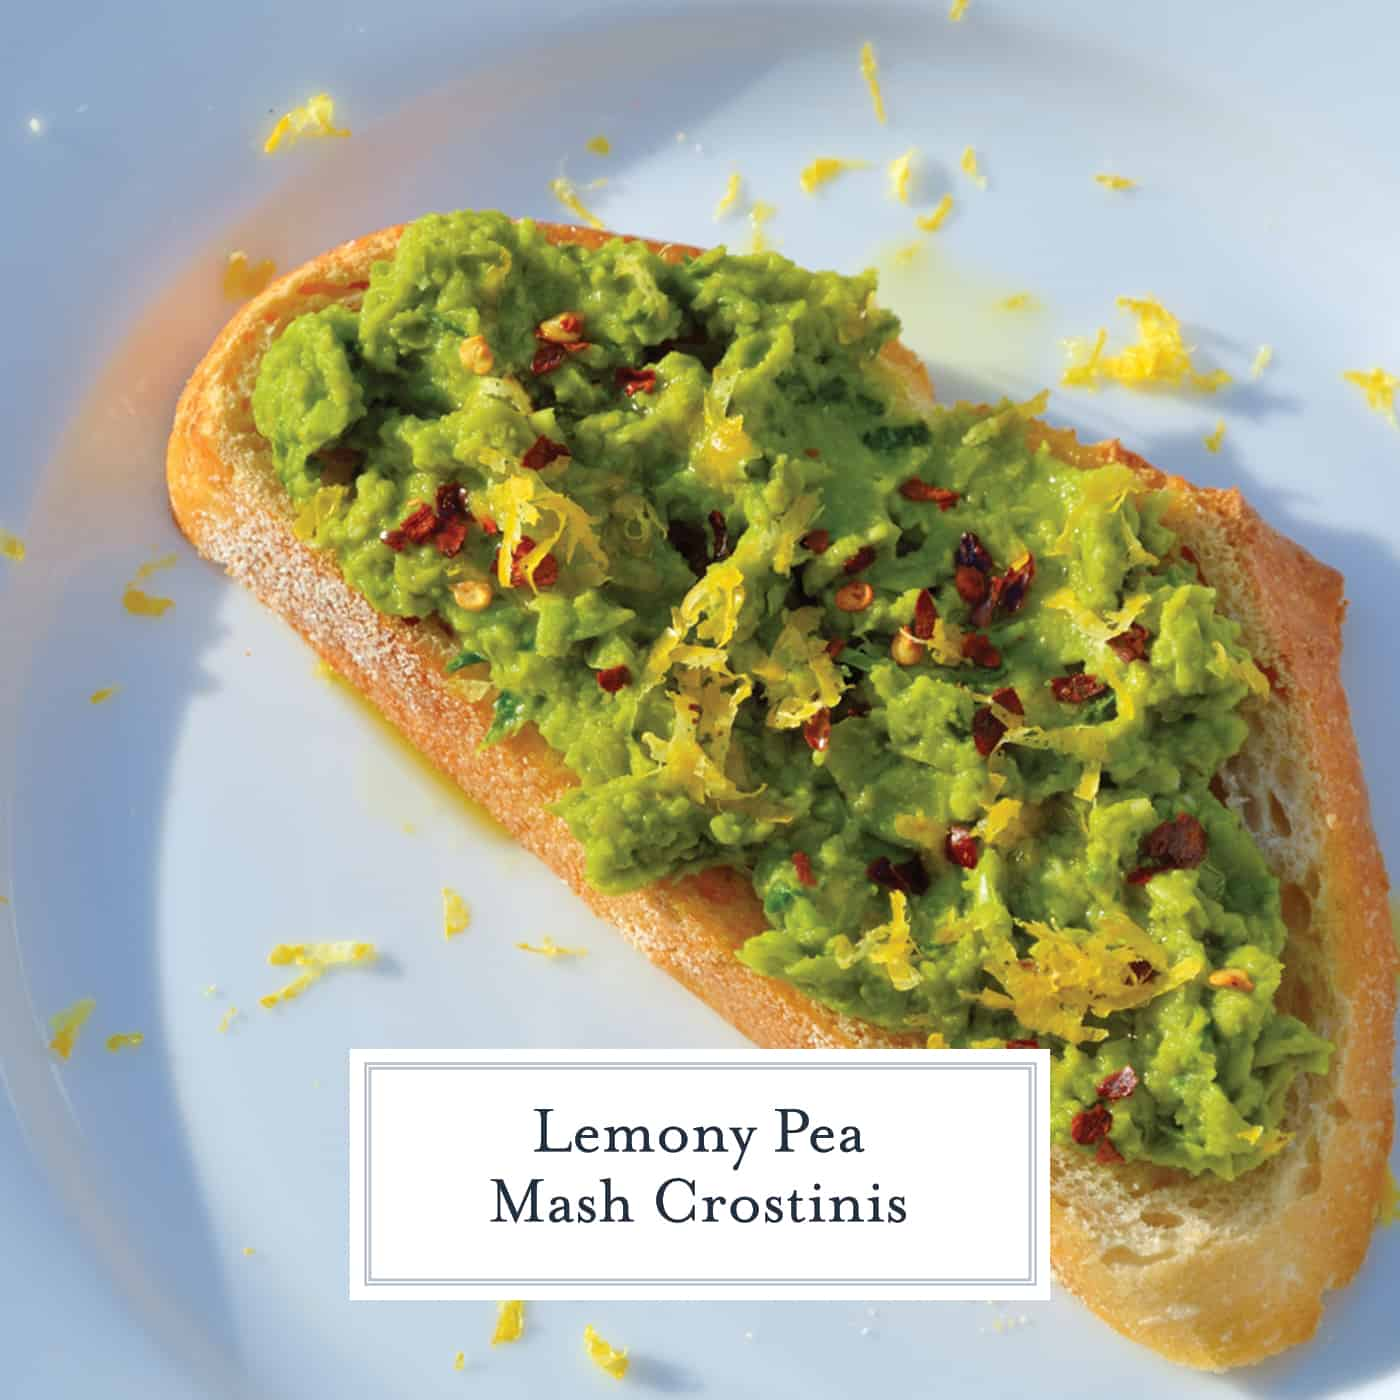 Lemony Pea Mash uses vibrant green peas with garlic and lemon to make a crunchy crostini that varies in taste and texture. #mashedpeas #crostinirecipes www.savoryexperiments.com